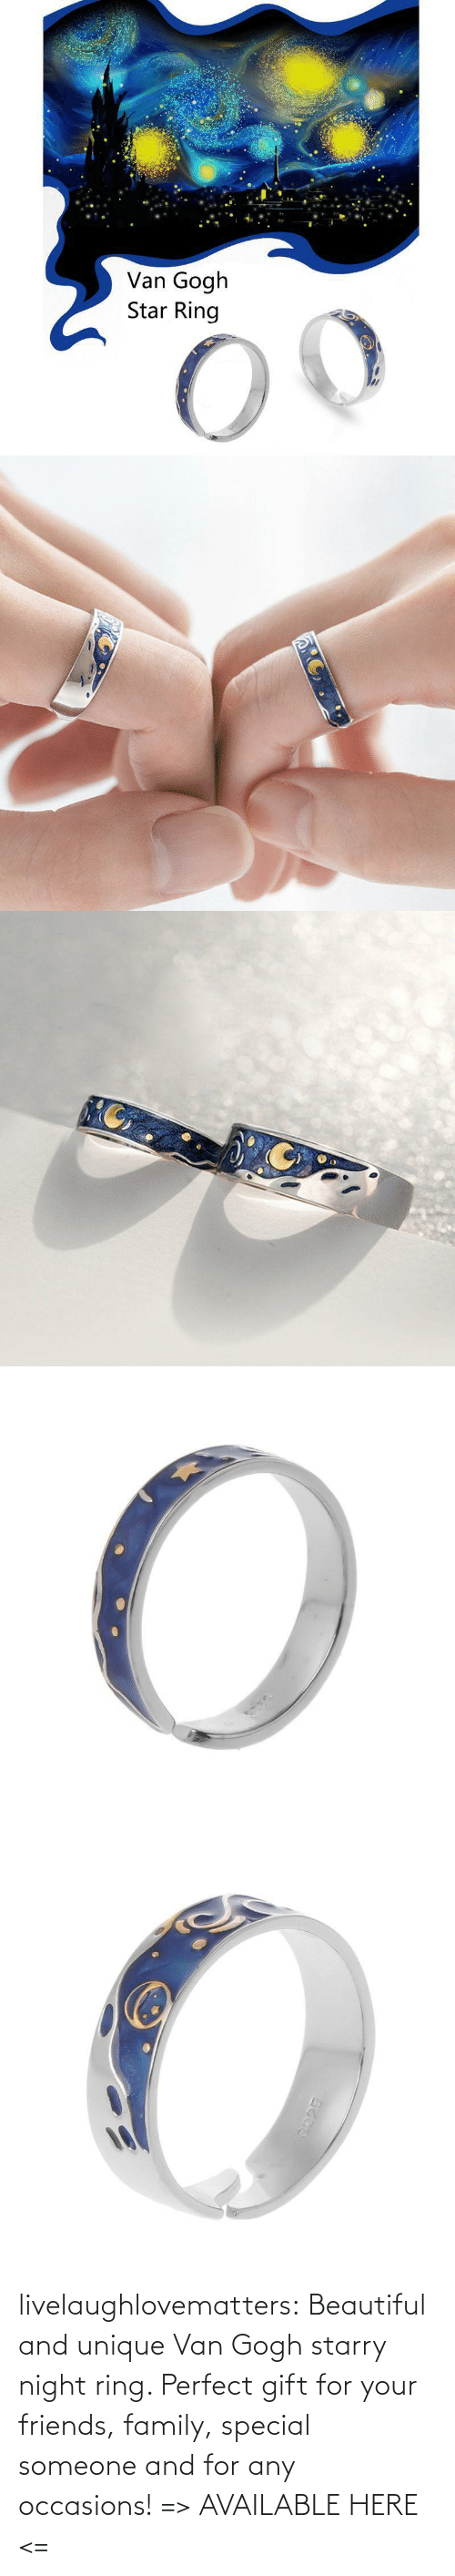 ring: livelaughlovematters: Beautiful and unique Van Gogh starry night ring. Perfect gift for your friends, family, special someone and for any occasions! =>AVAILABLE HERE <=